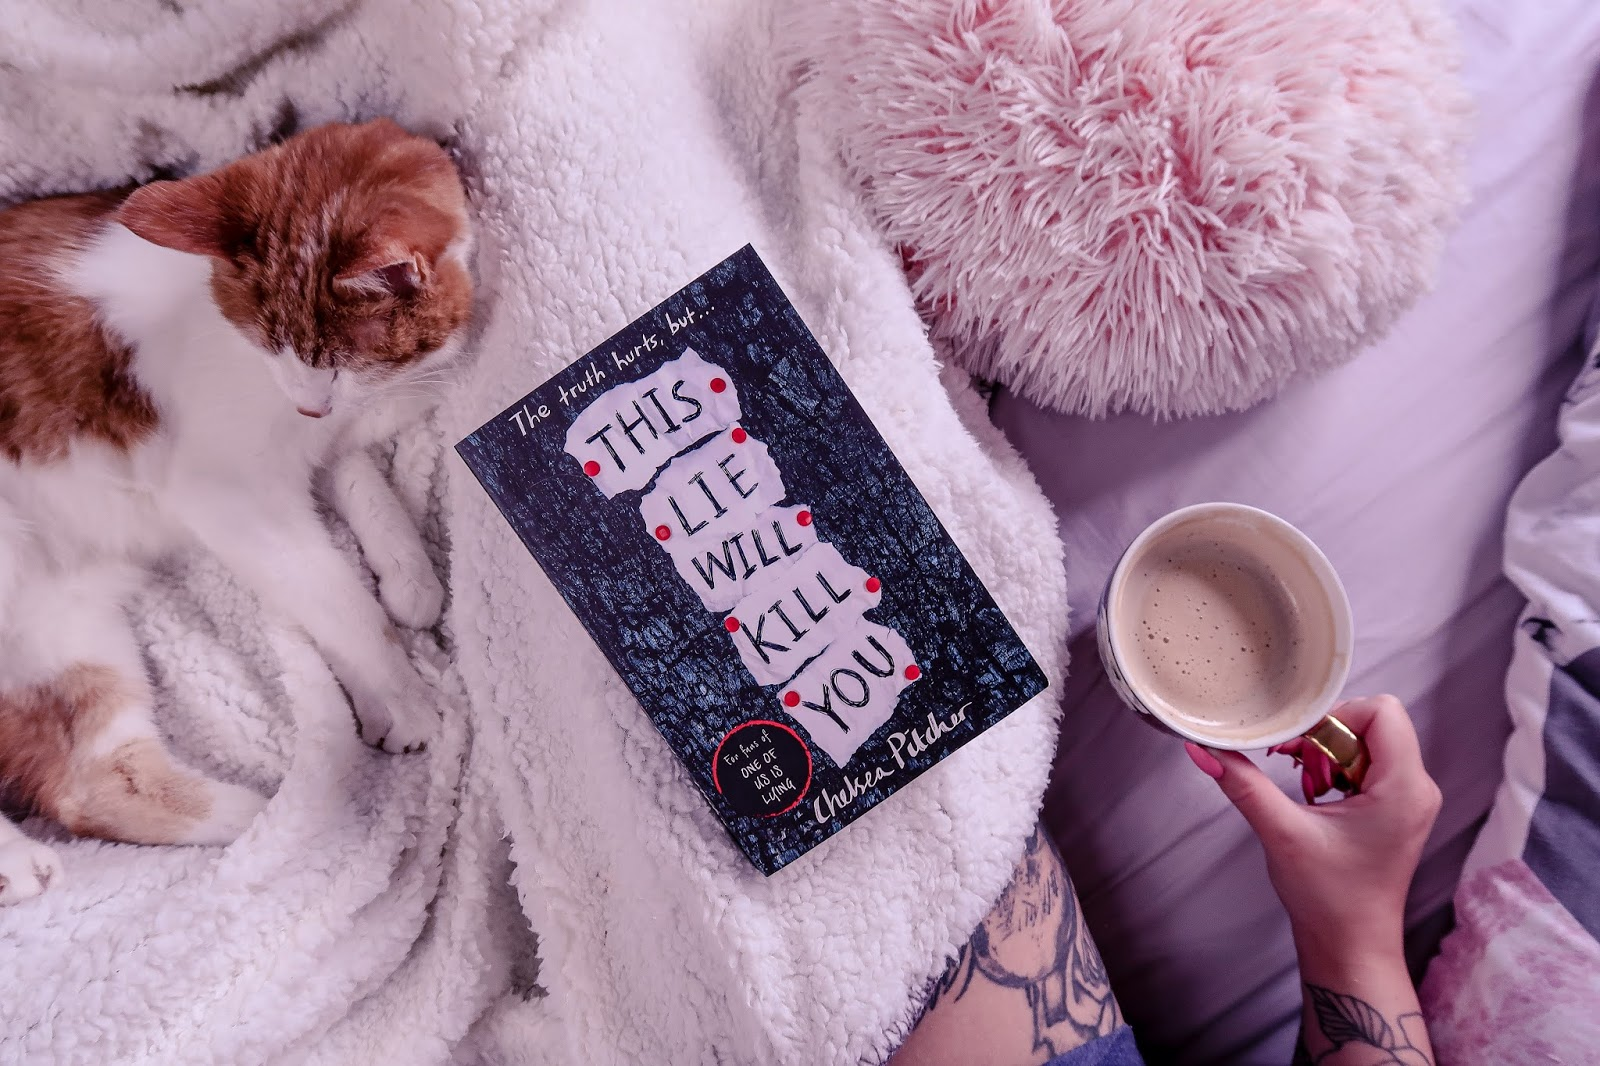 Birds eye view of the book This Lie Will Kill You by Chelsea Pitcher on a white blanket and a cat in the background and pink pillow out of focus with ofaglasgowgirl holding a mug